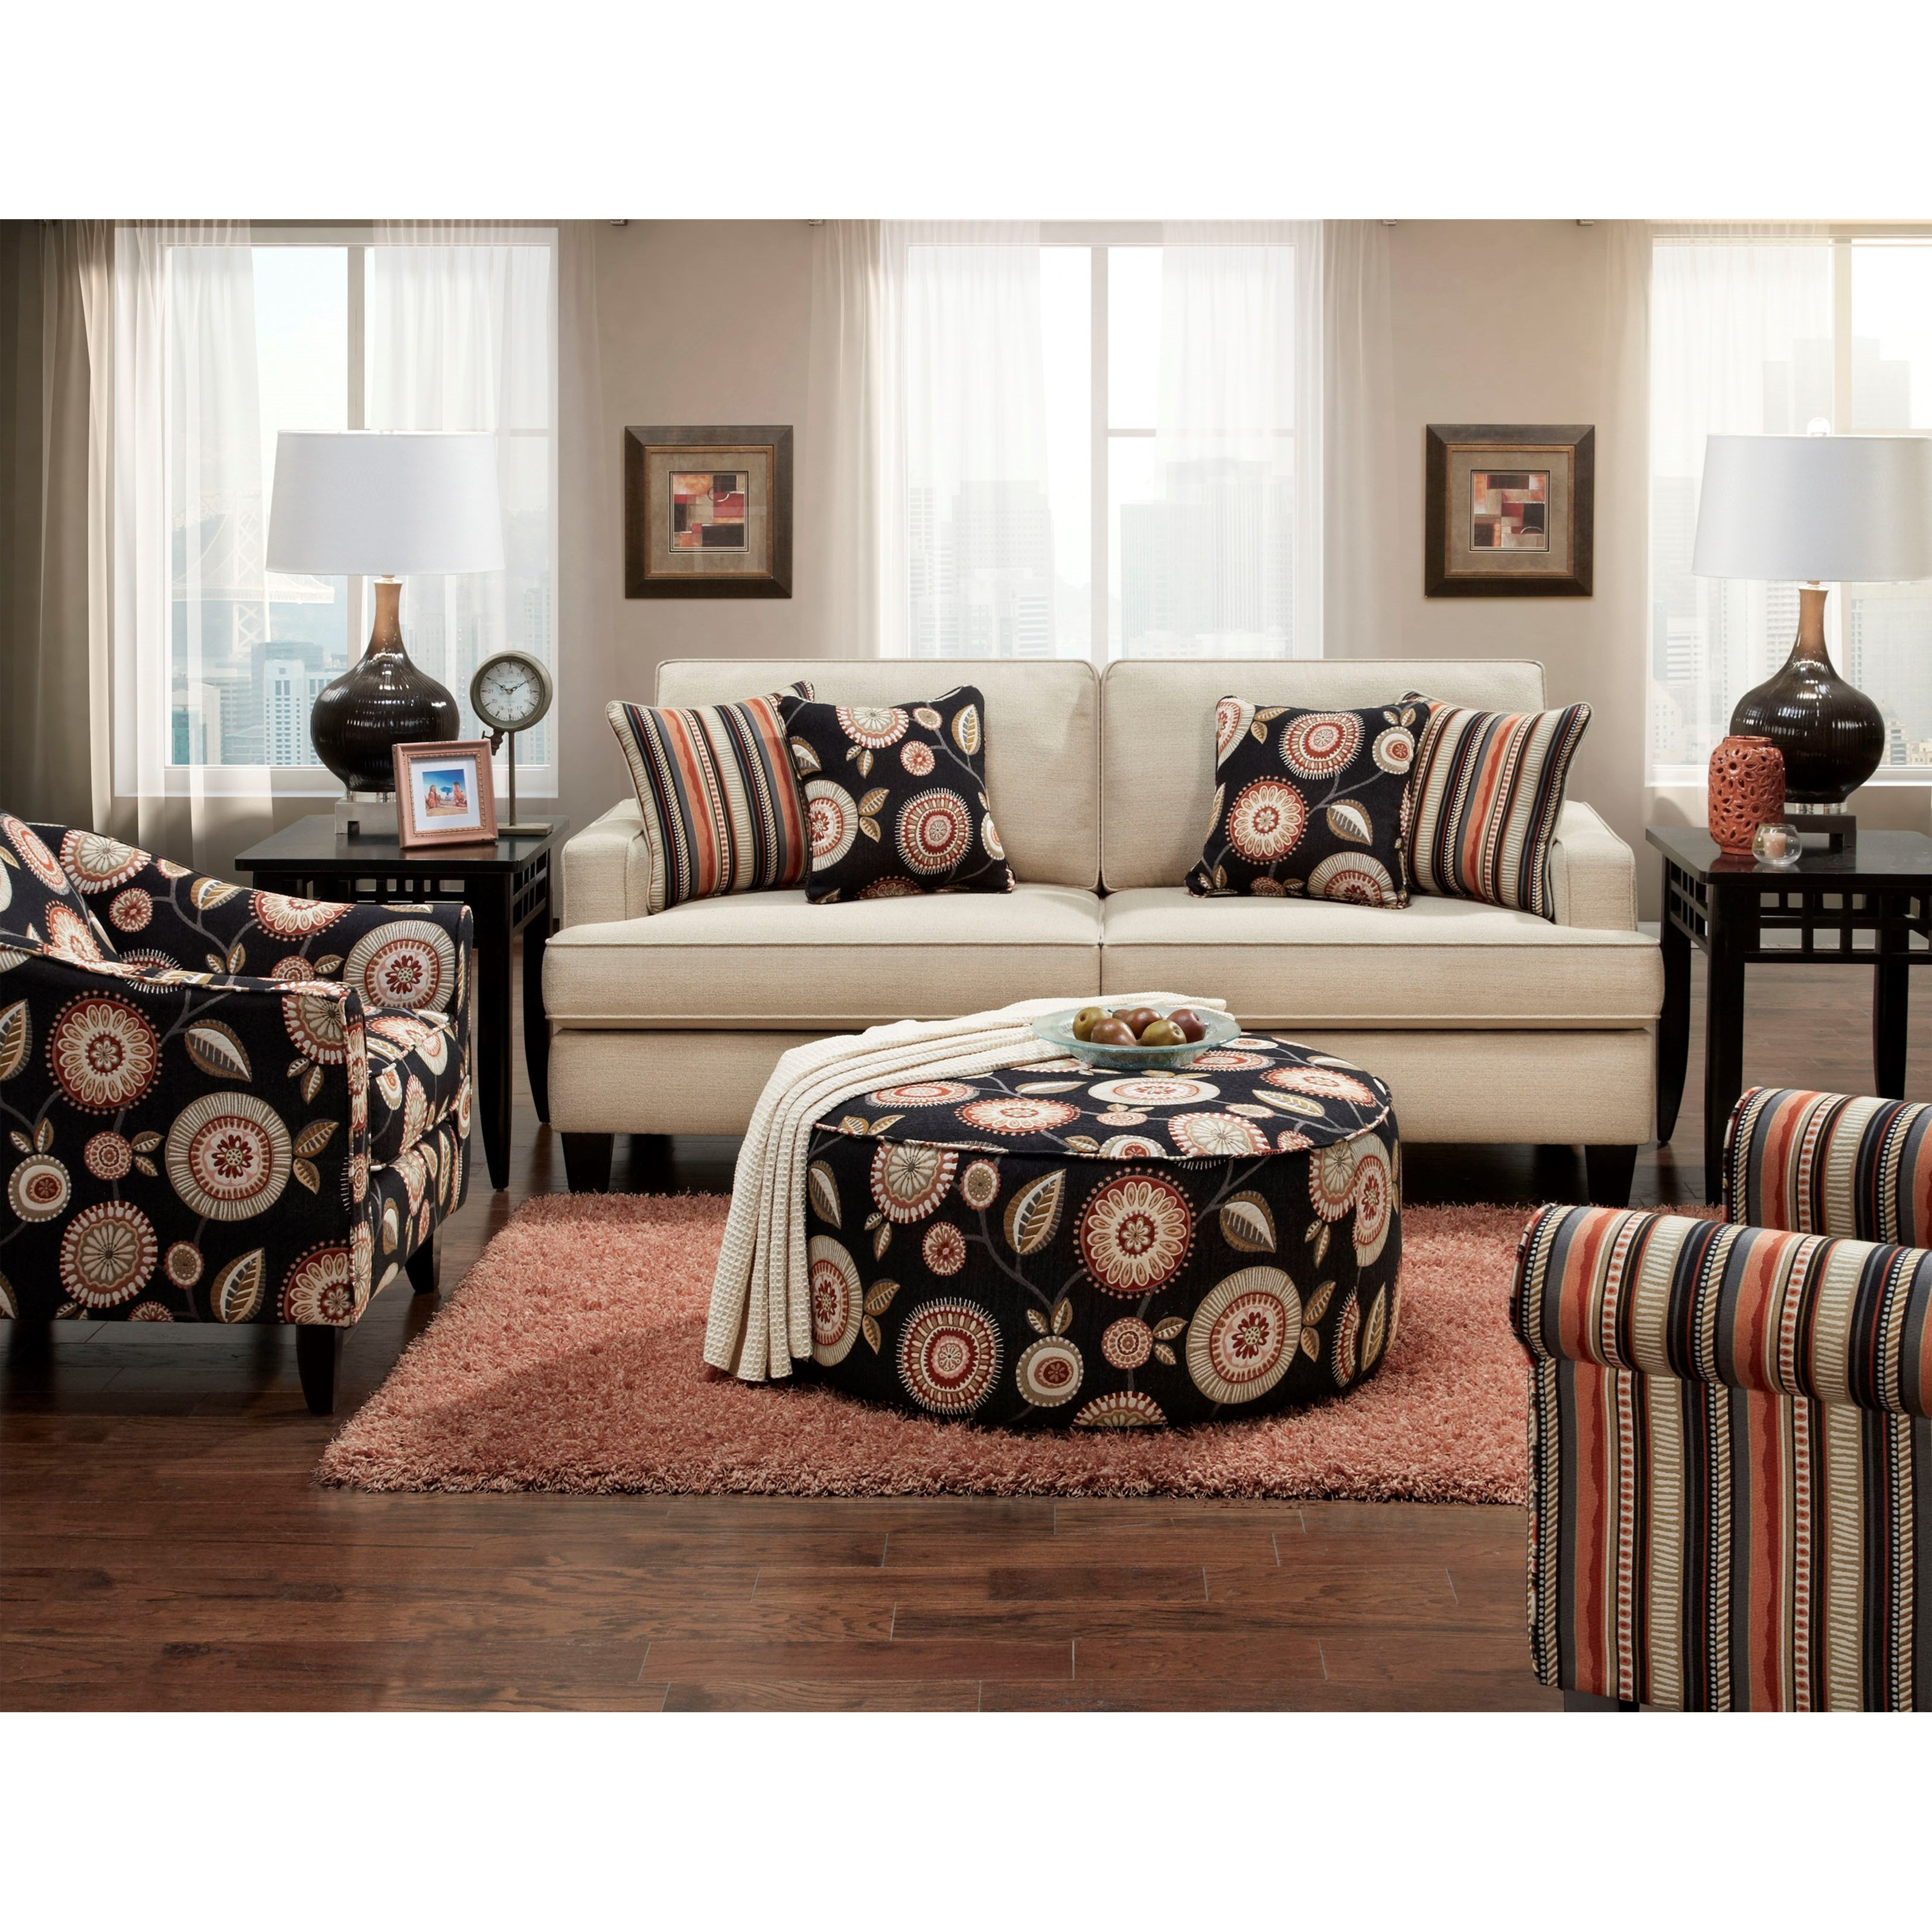 Fusion Furniture 2490 Stationary Living Room Group - Item Number: 2490 Living Room Group 3